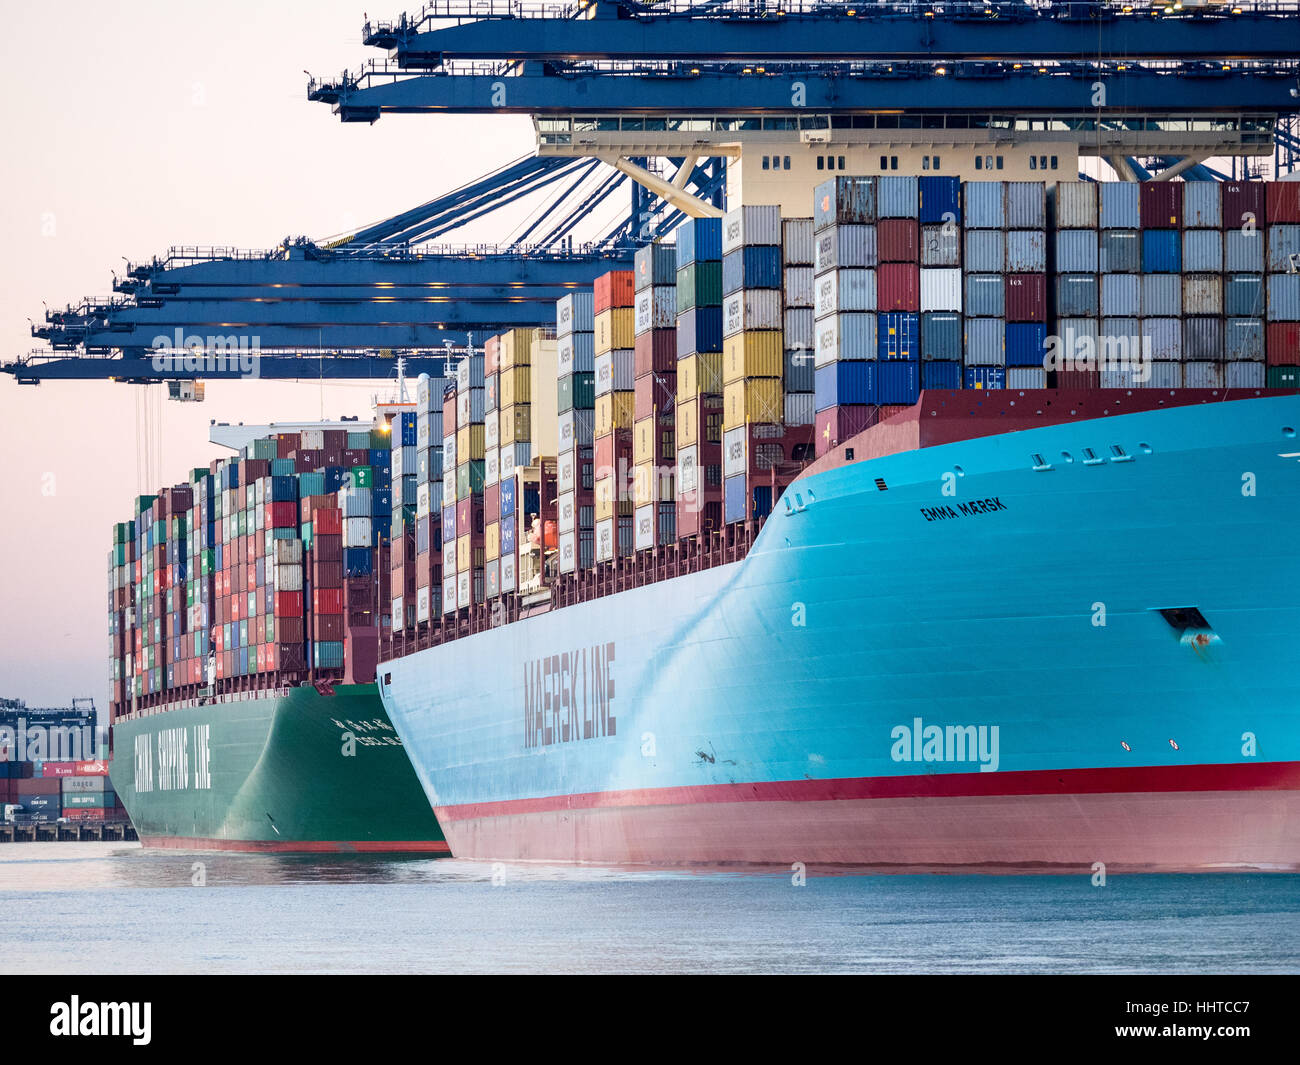 Port of Felixstowe International Trade UK - Ships being loaded and unloaded at Felixstowe, UK's largest container - Stock Image